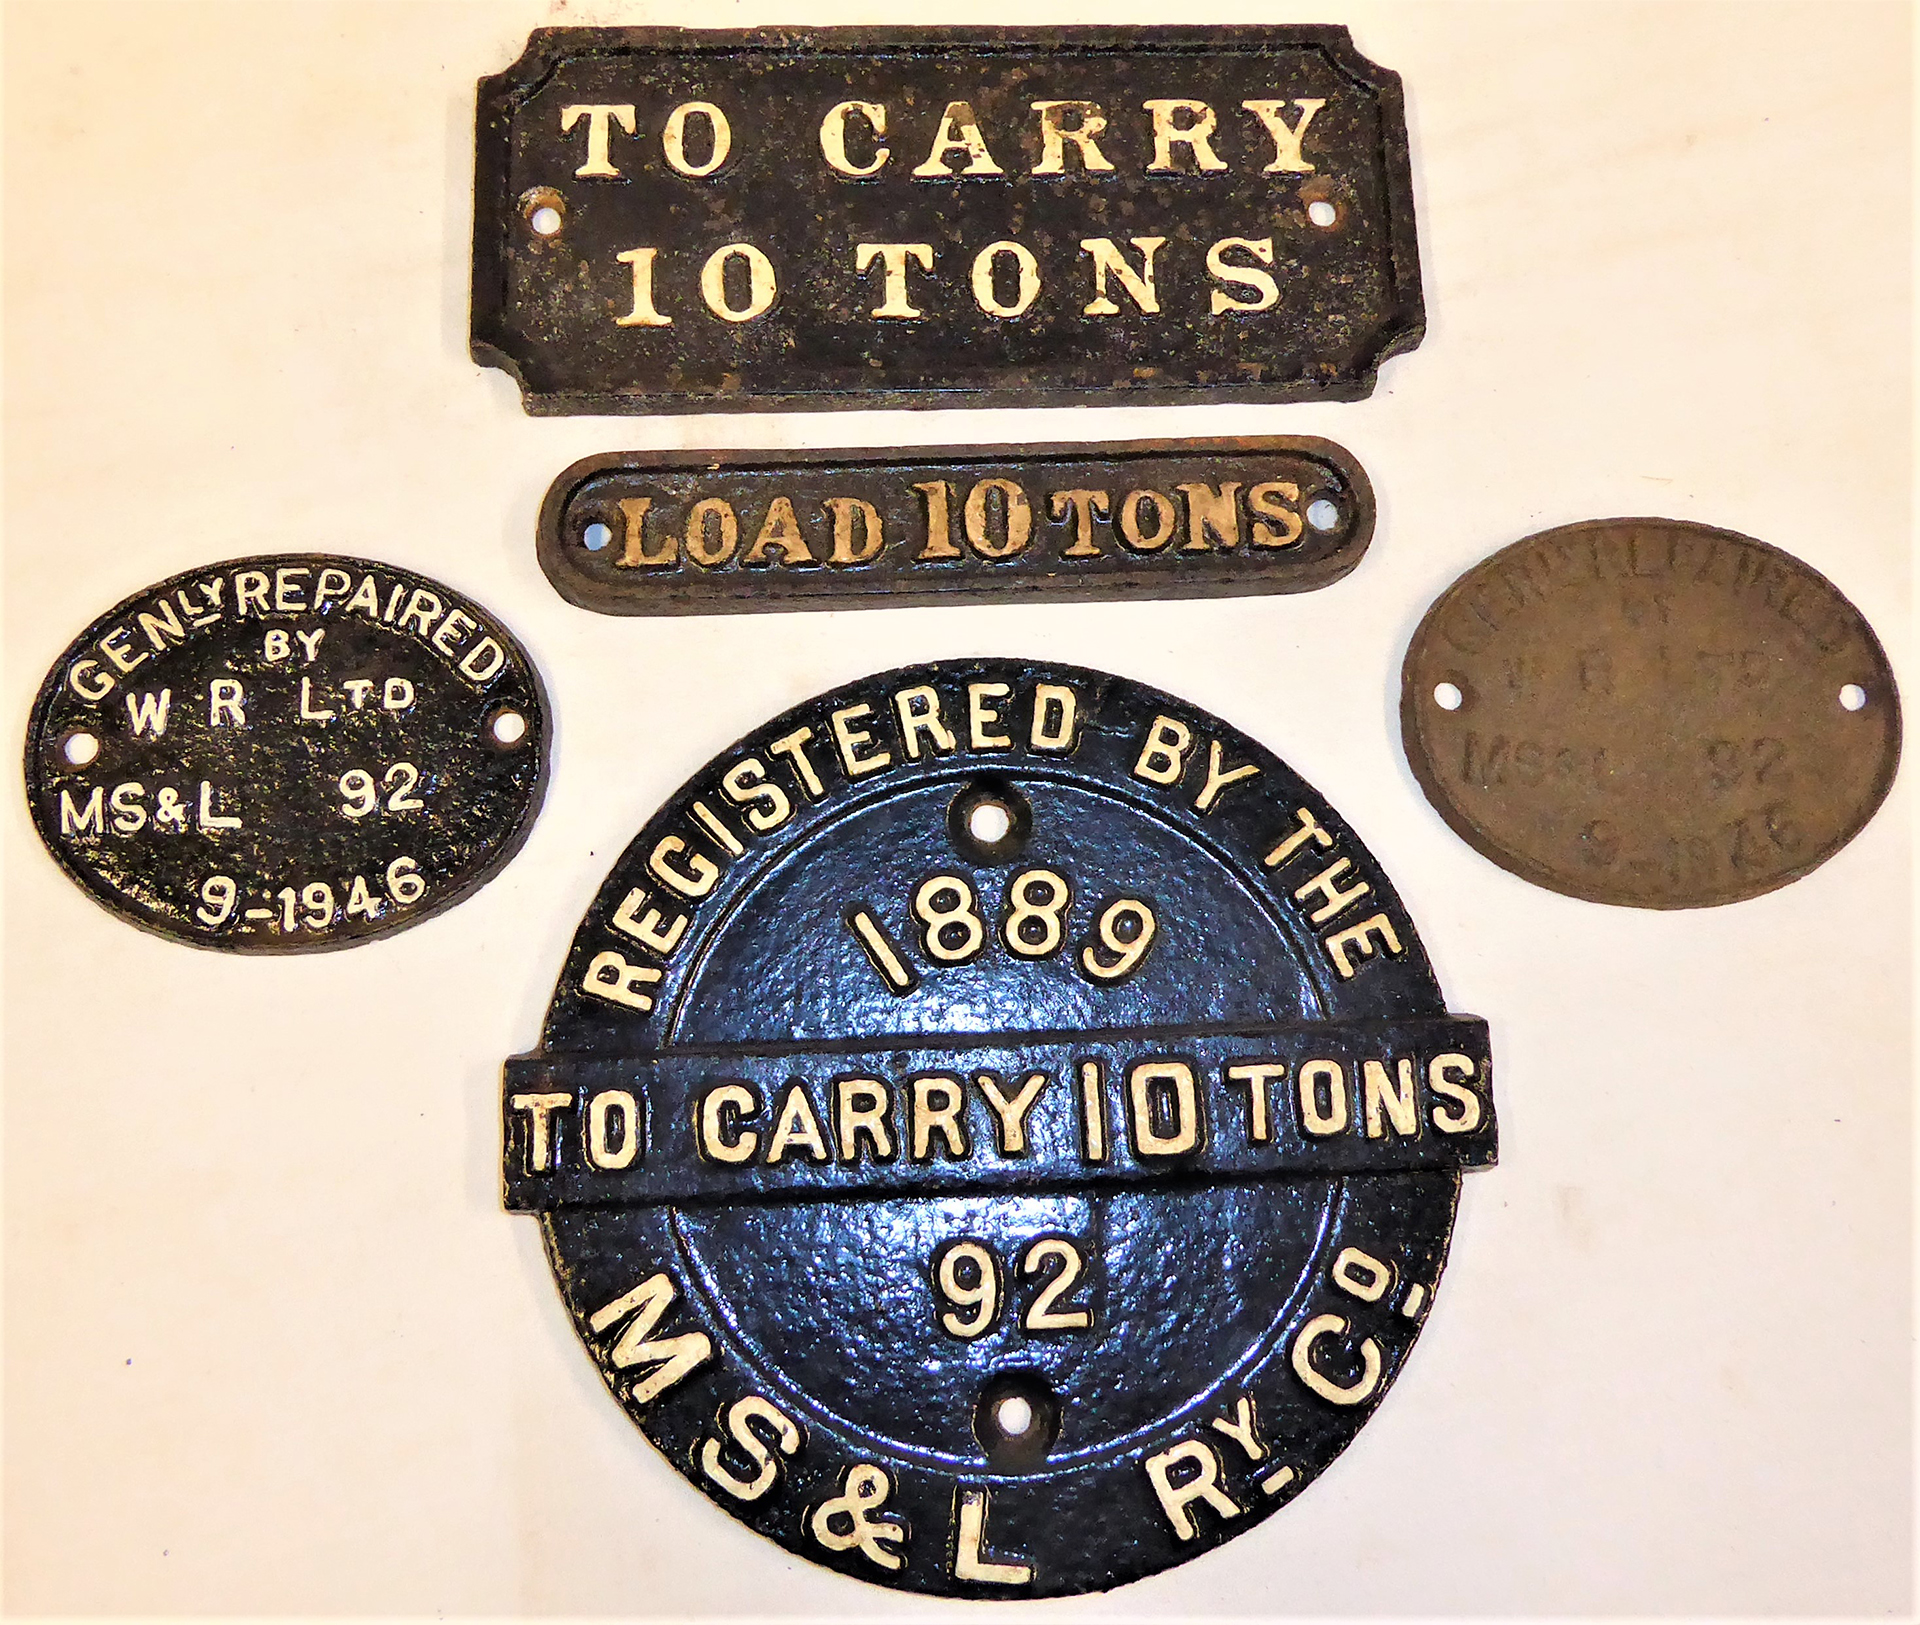 A collection of cast iron Wagon Plates which appear to be recovered from the same vehicle. TO